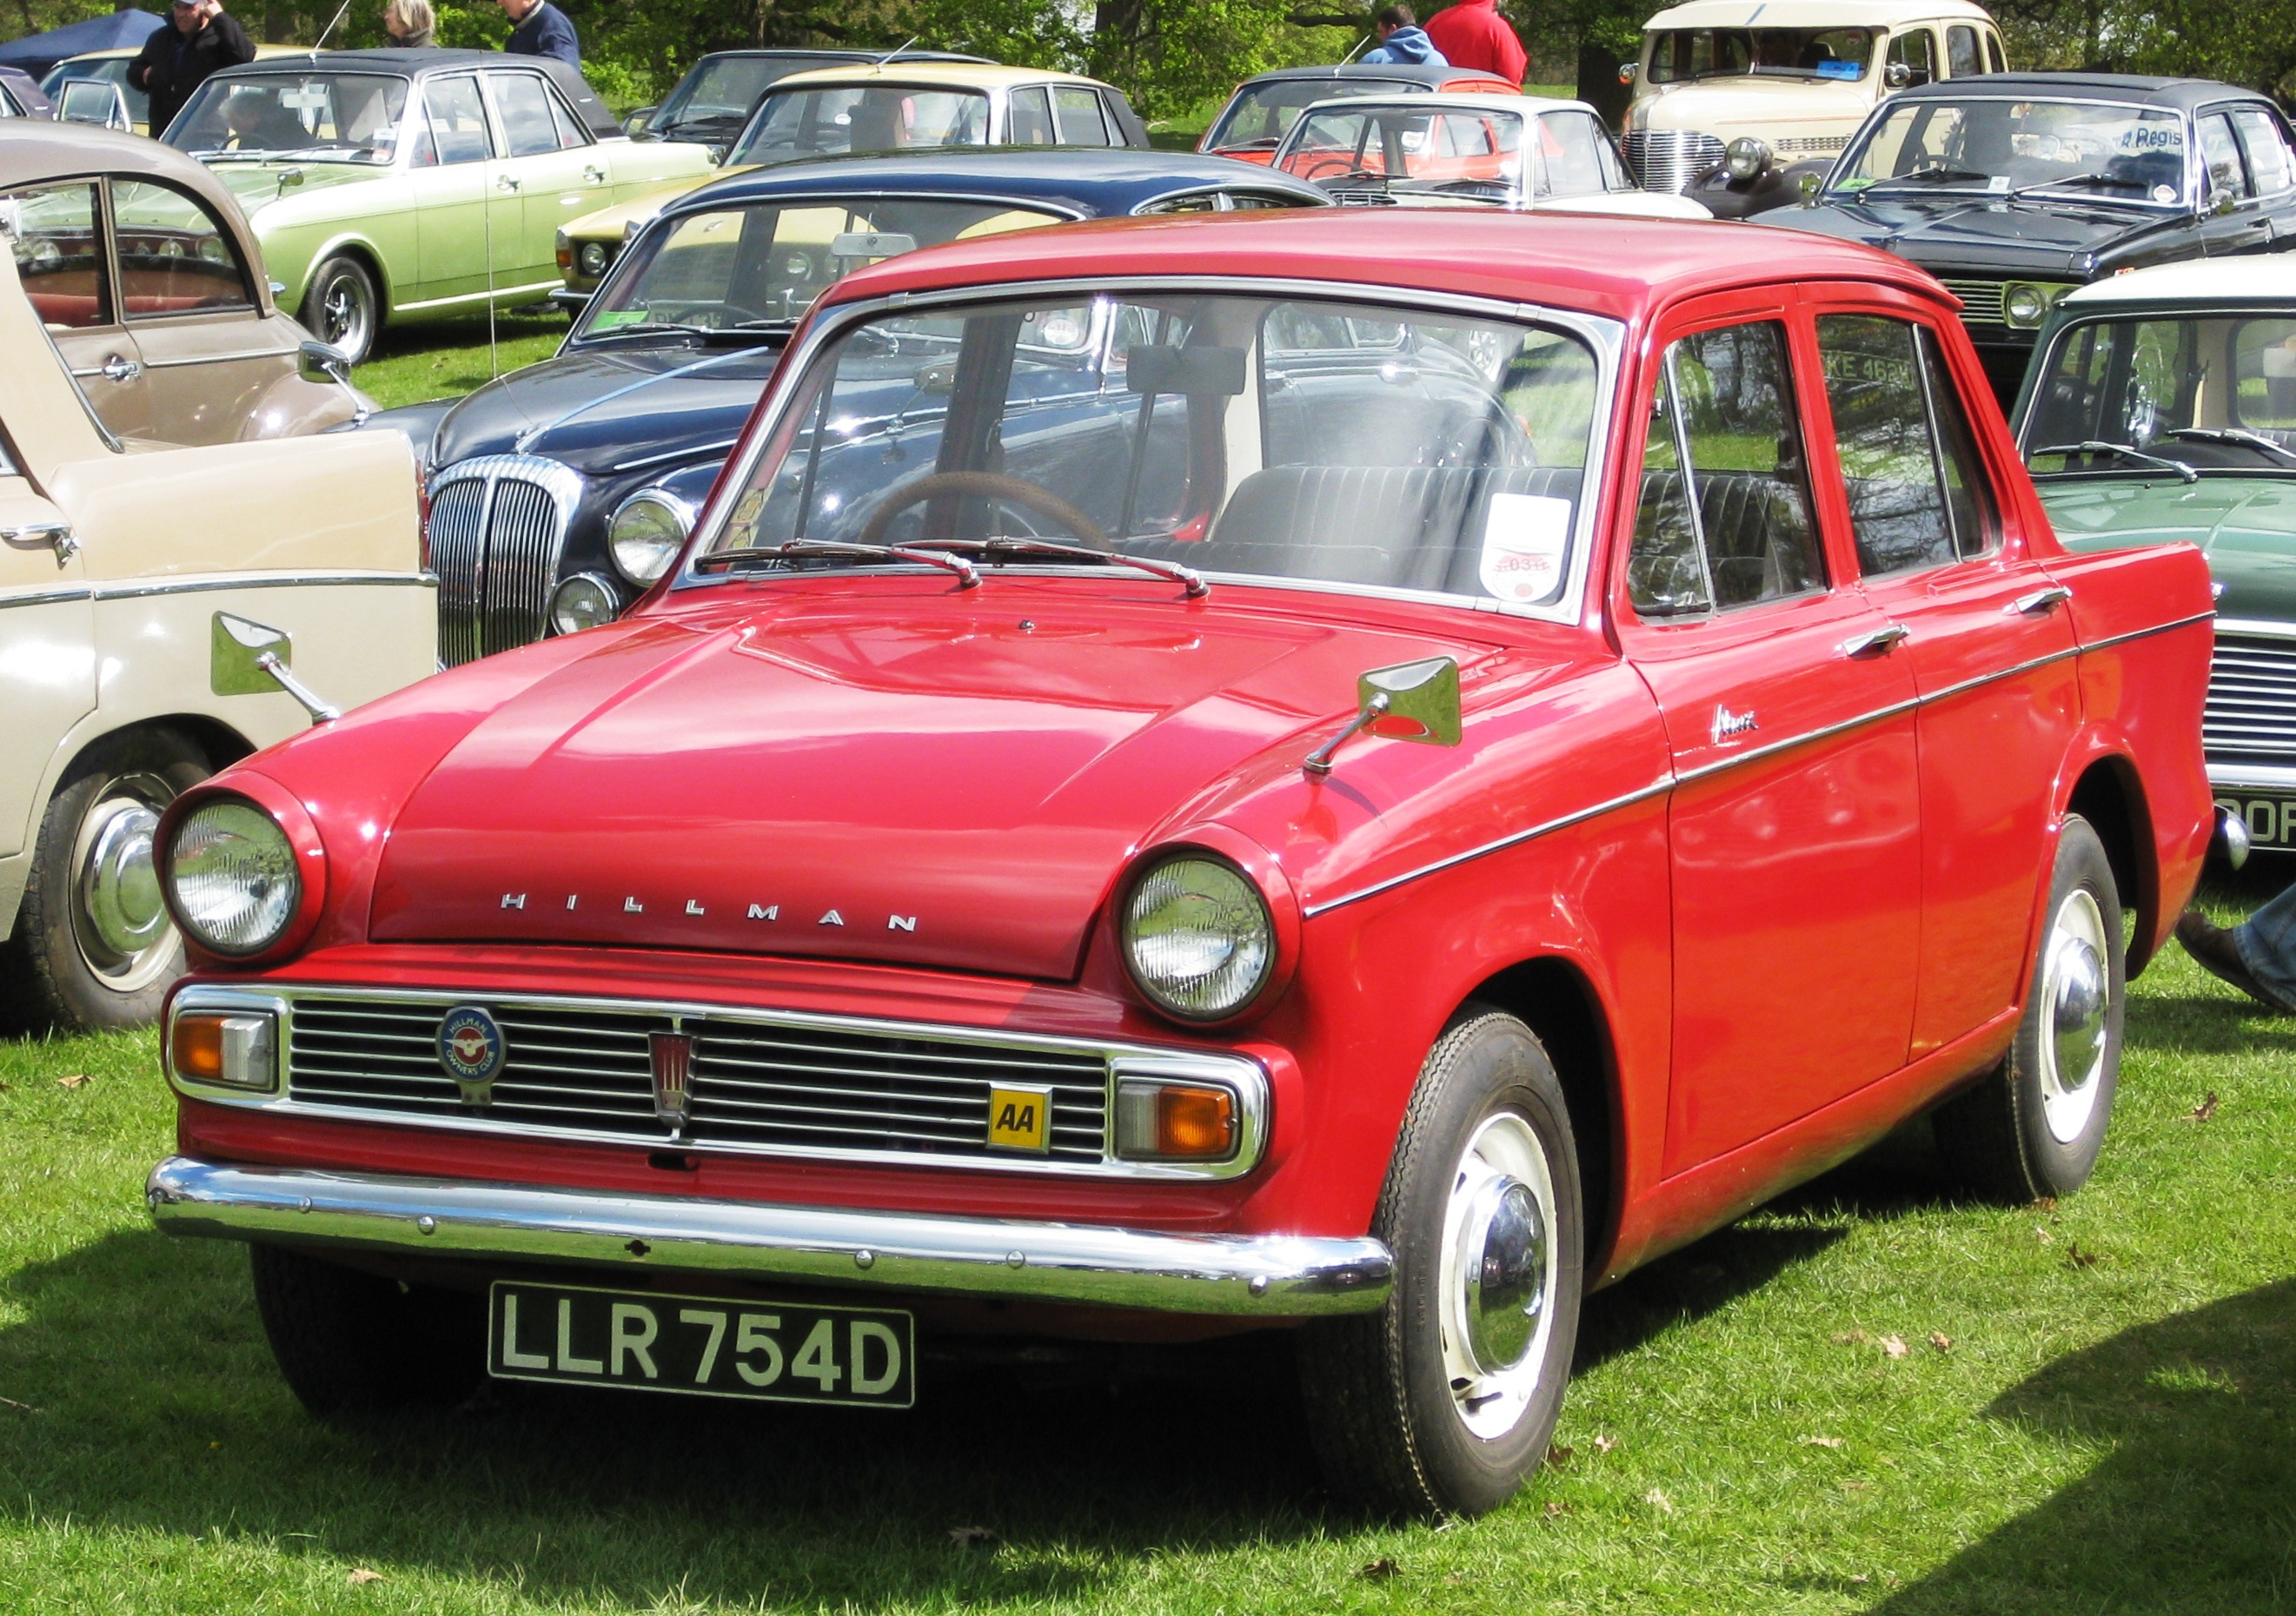 1965 Hillman Minx 6 - CarsAddiction.com